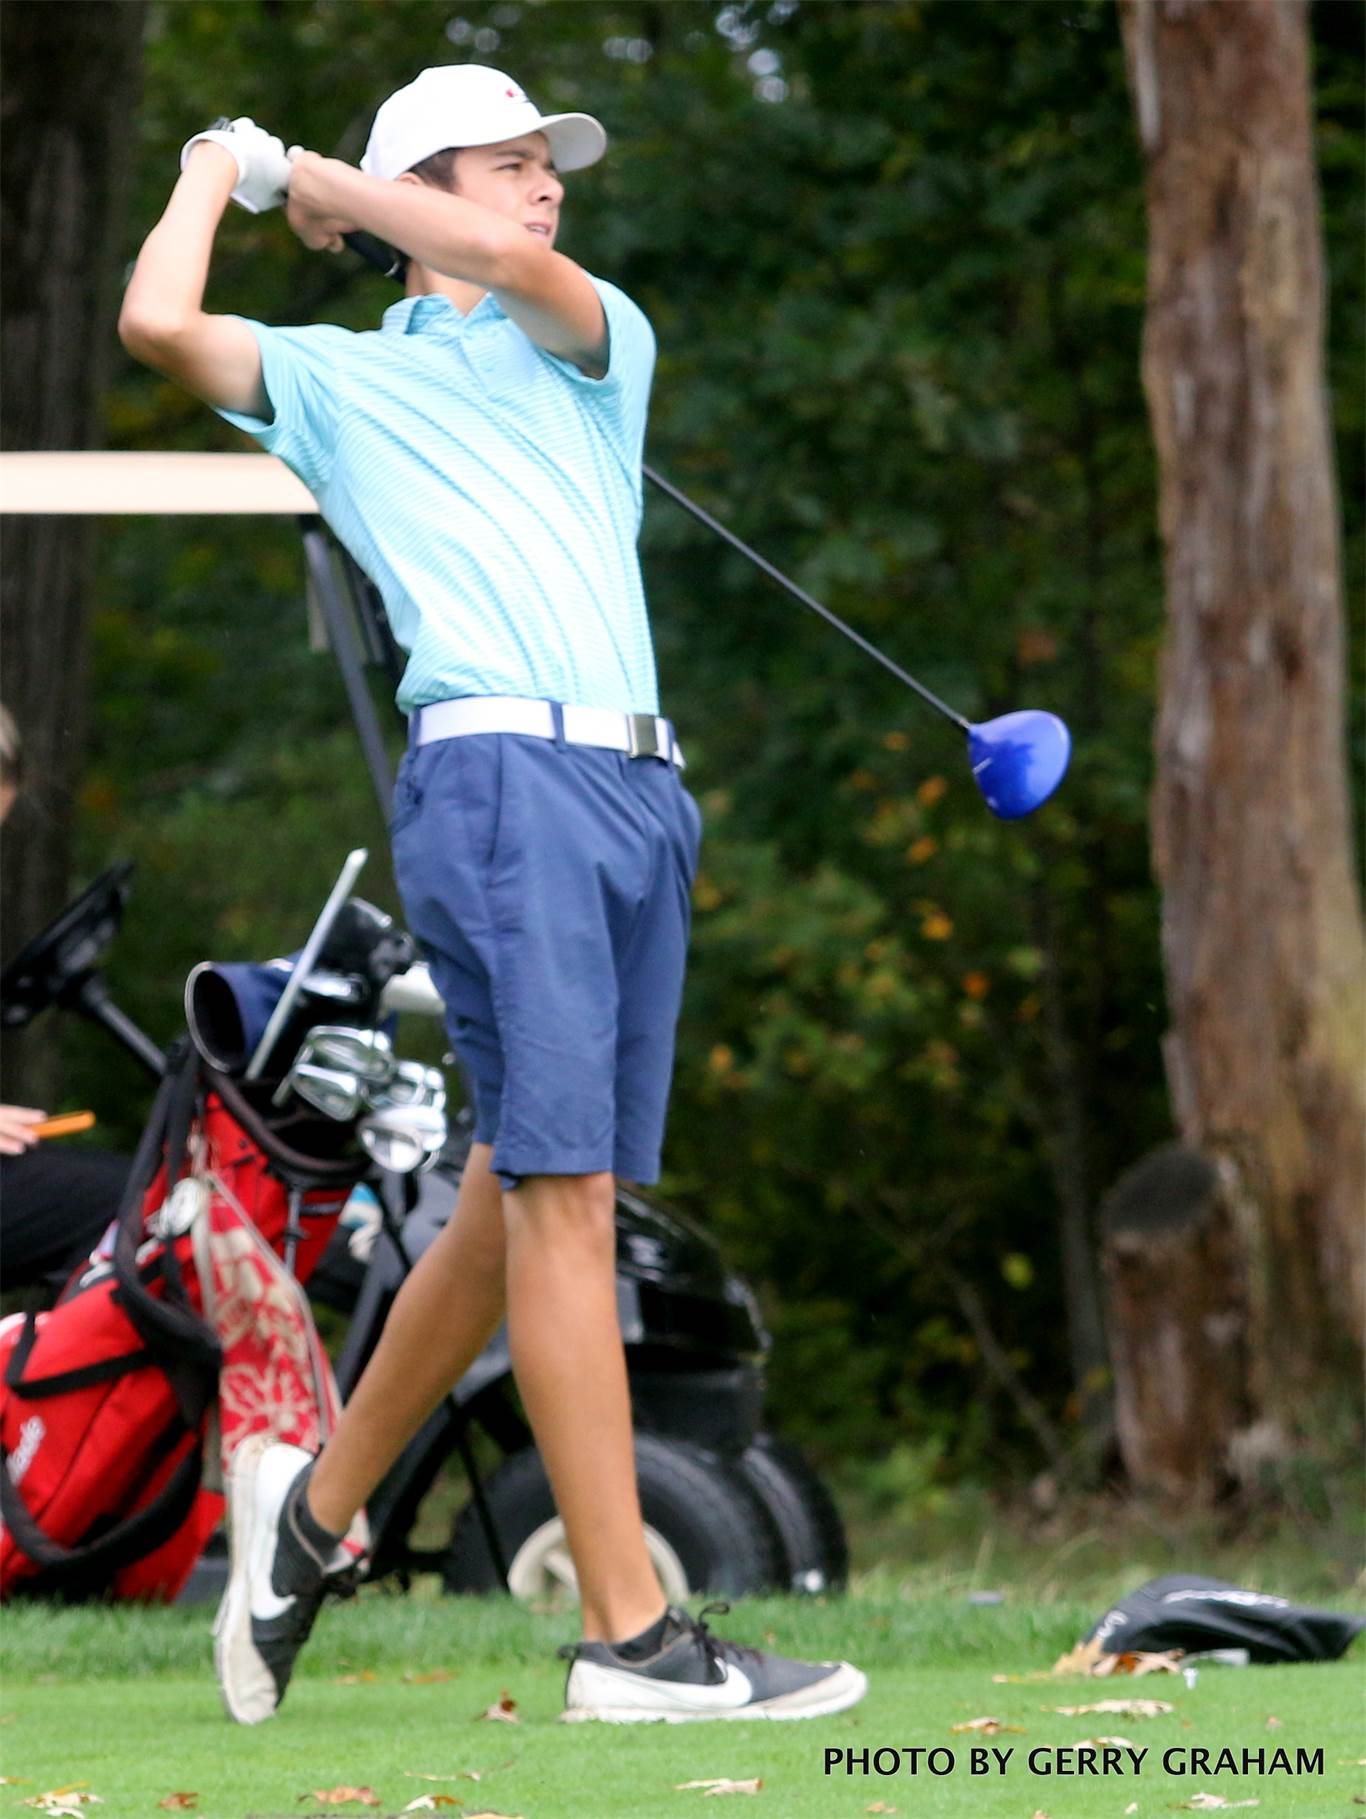 BT's Alex Duarte finished the first round of the OFSAA boys' golf championship with a 7-over 79 (tied for 43rd). Photo by Gerry Graham.